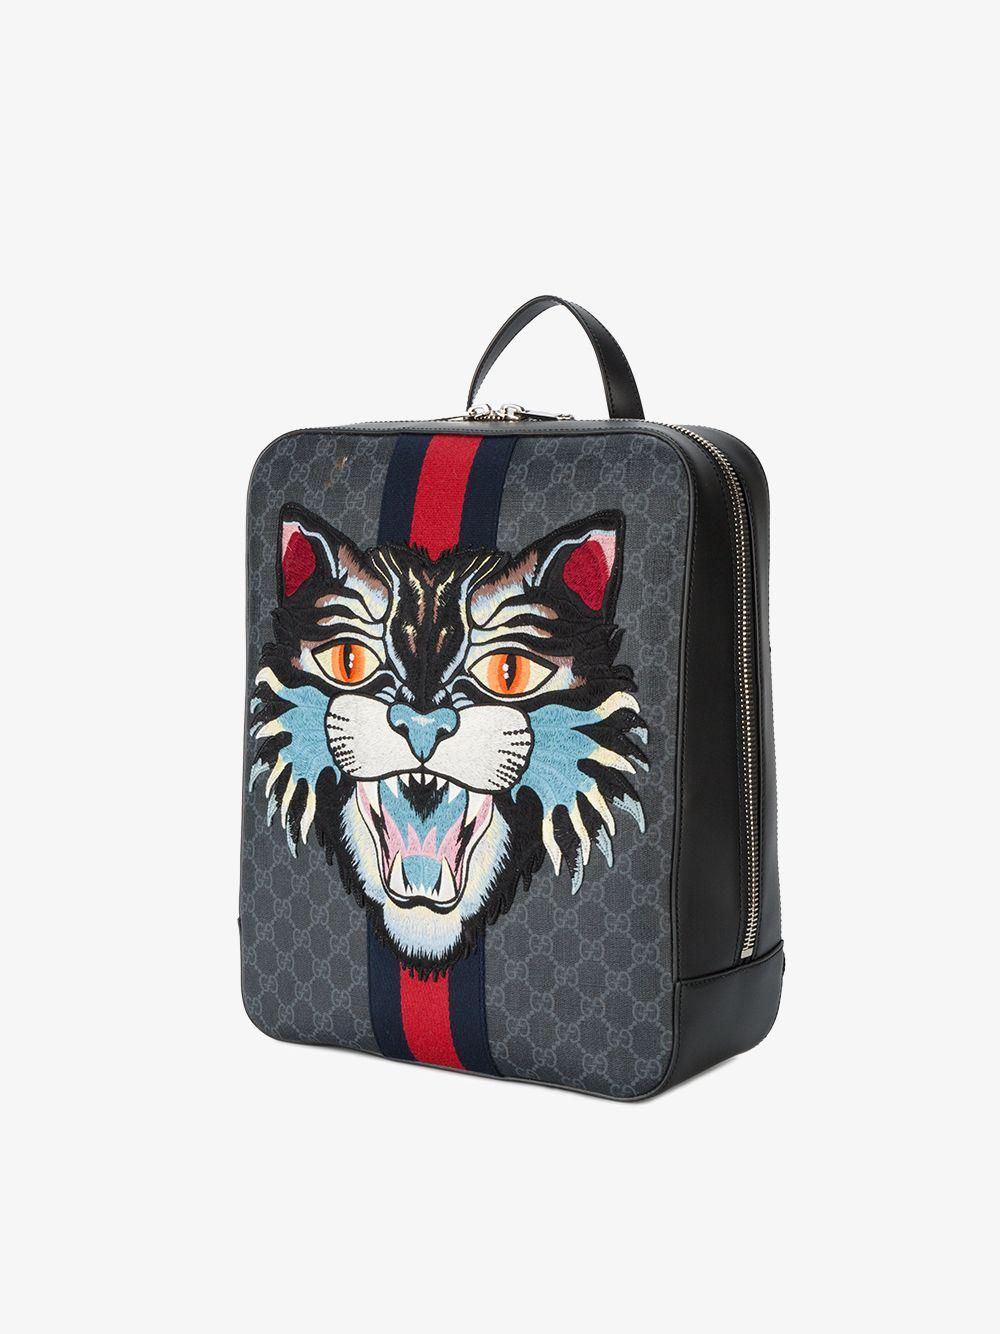 194ca4e0b8f Lyst - Gucci Angry Cat Gg Supreme Backpack in Black for Men